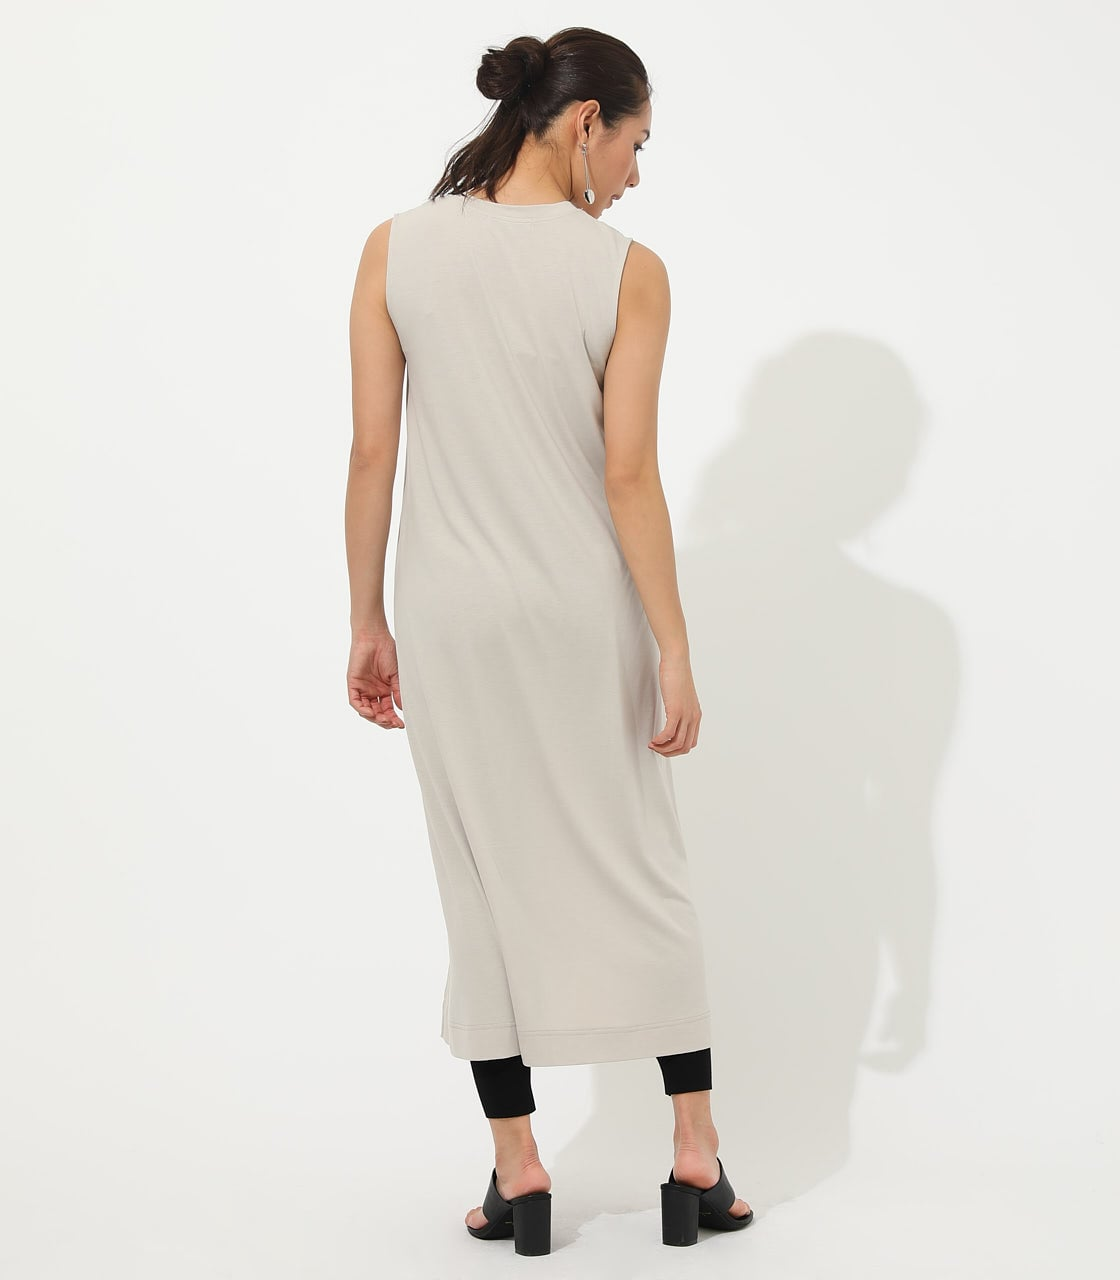 【AZUL BY MOUSSY】ICE CLEAN MAXI ONEPIECE【MOOK50掲載 90150】 詳細画像 L/BEG 6